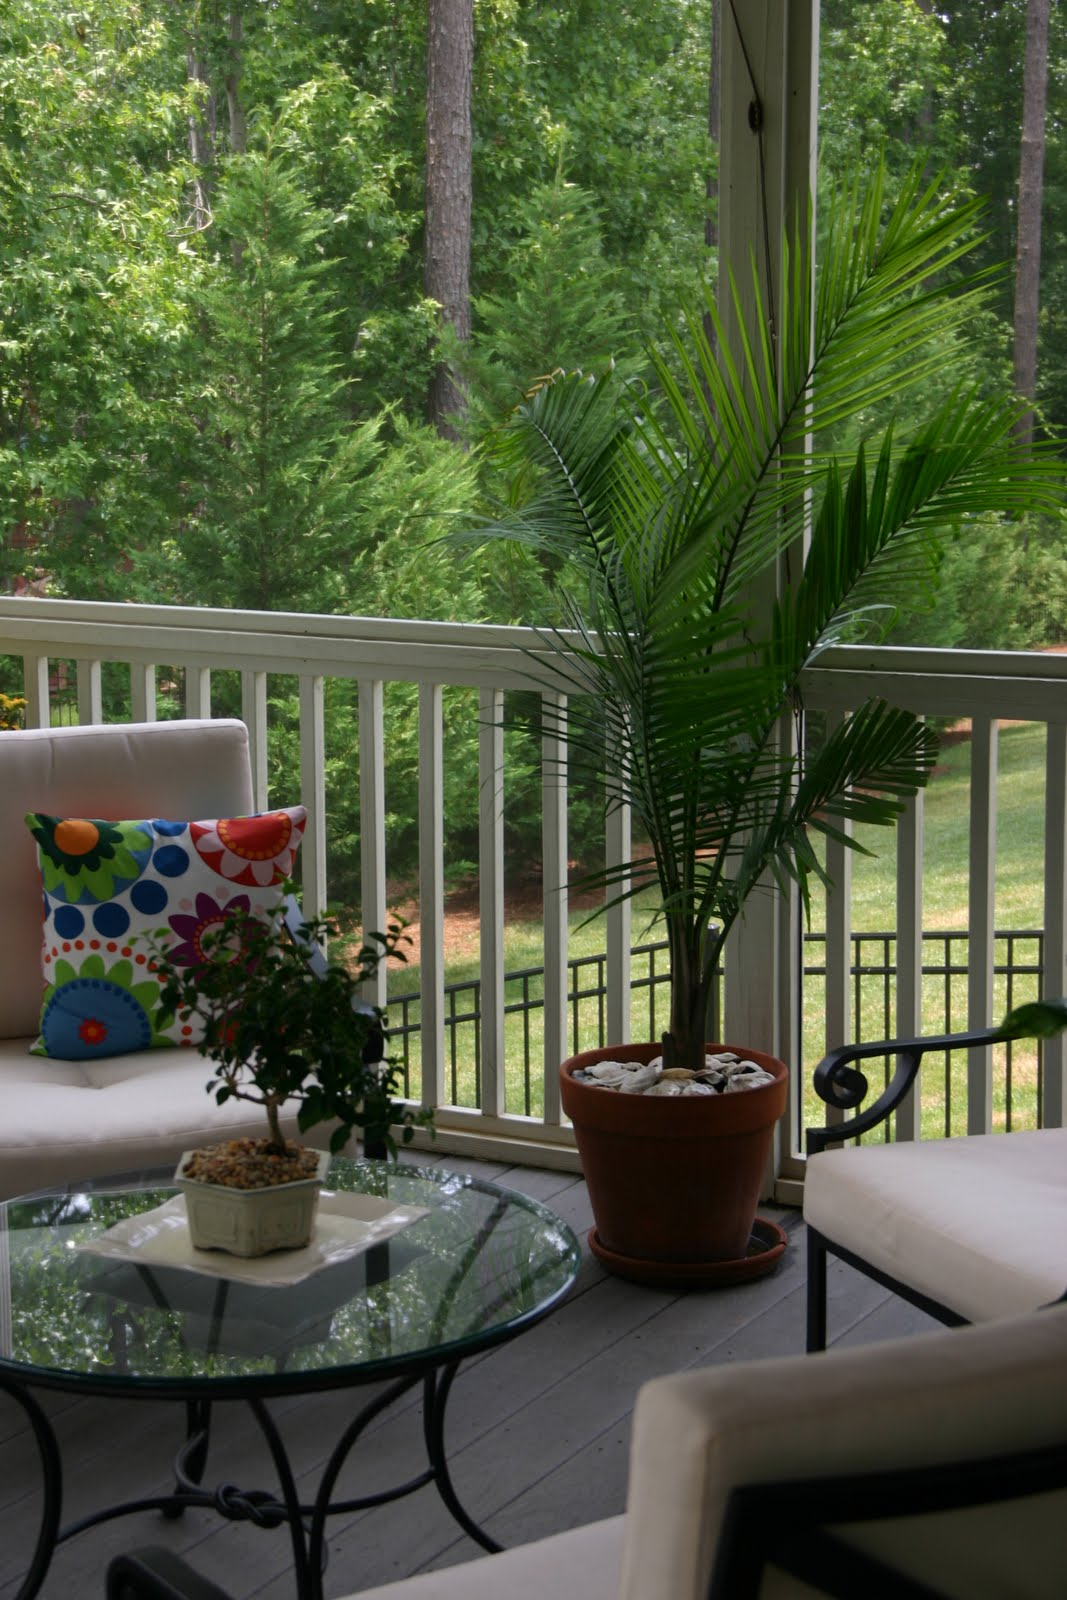 I Am Even Hy Looking At The Plants Outside Onto Screened In Porch From Inside Family Room Or Kitchen